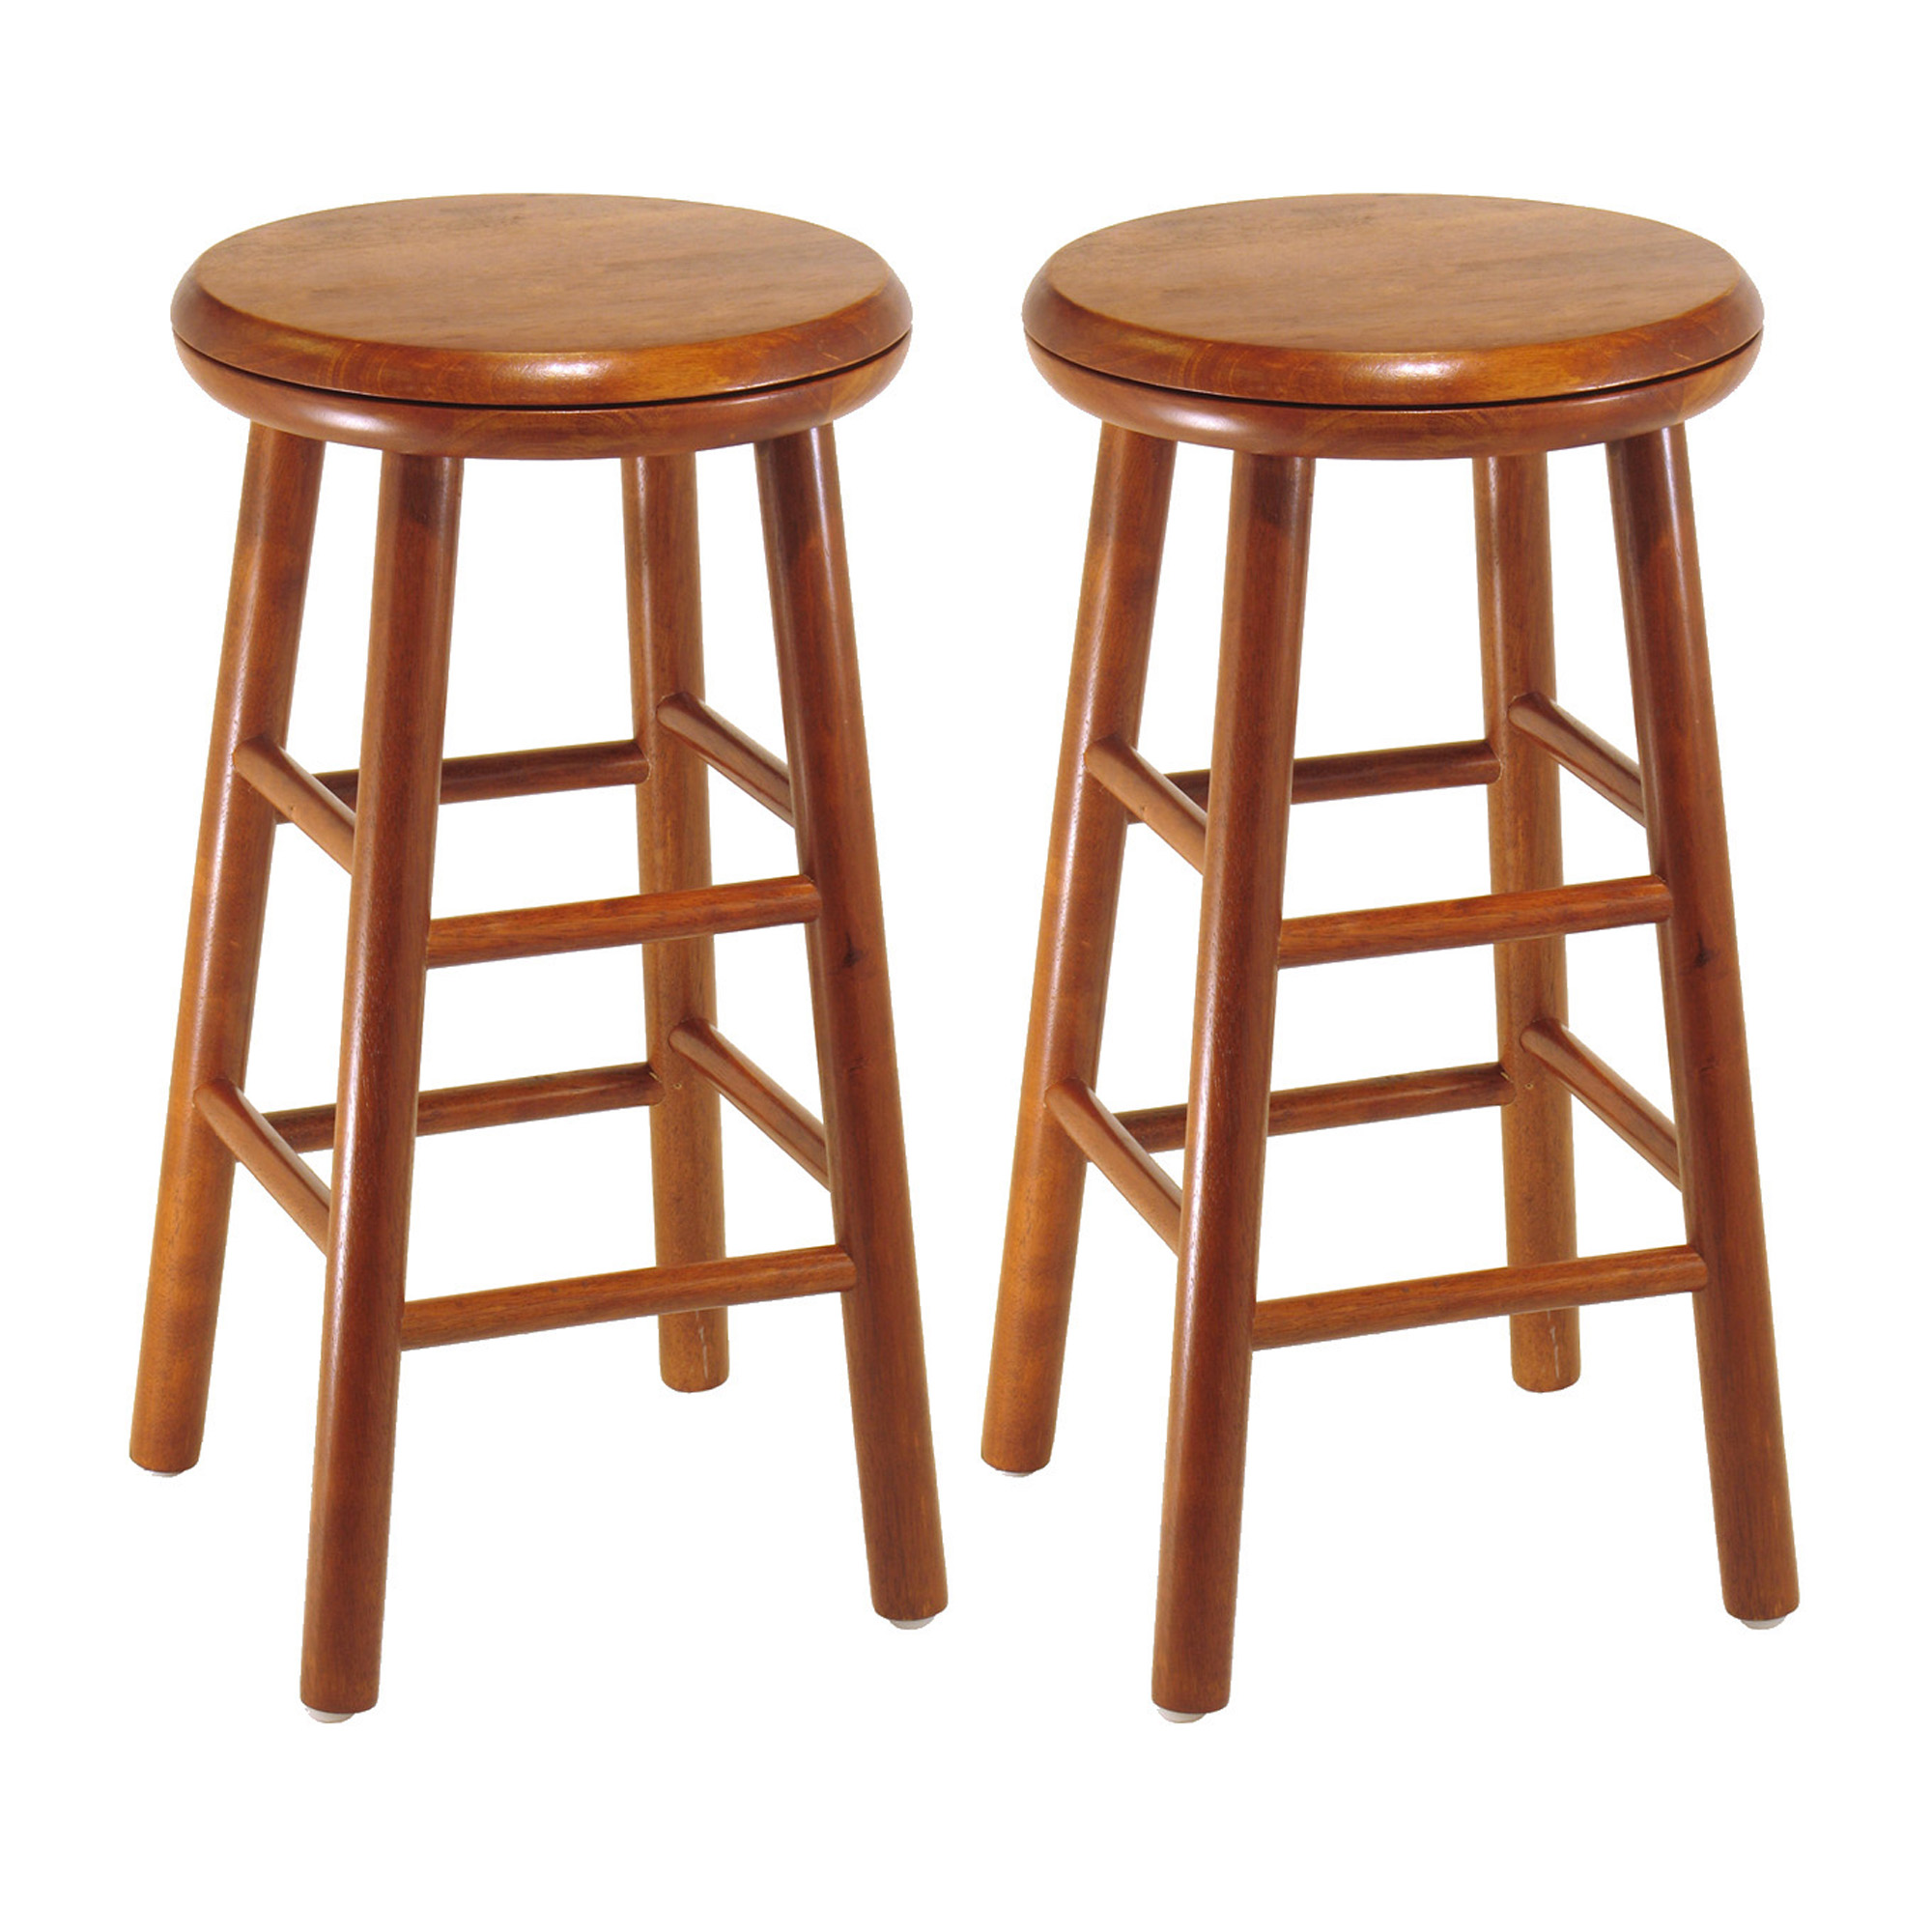 "Winsome Wood Oakley 25"" Swivel Seat Counter Stools, Set of 2, Cherry, Multiple Finishes"